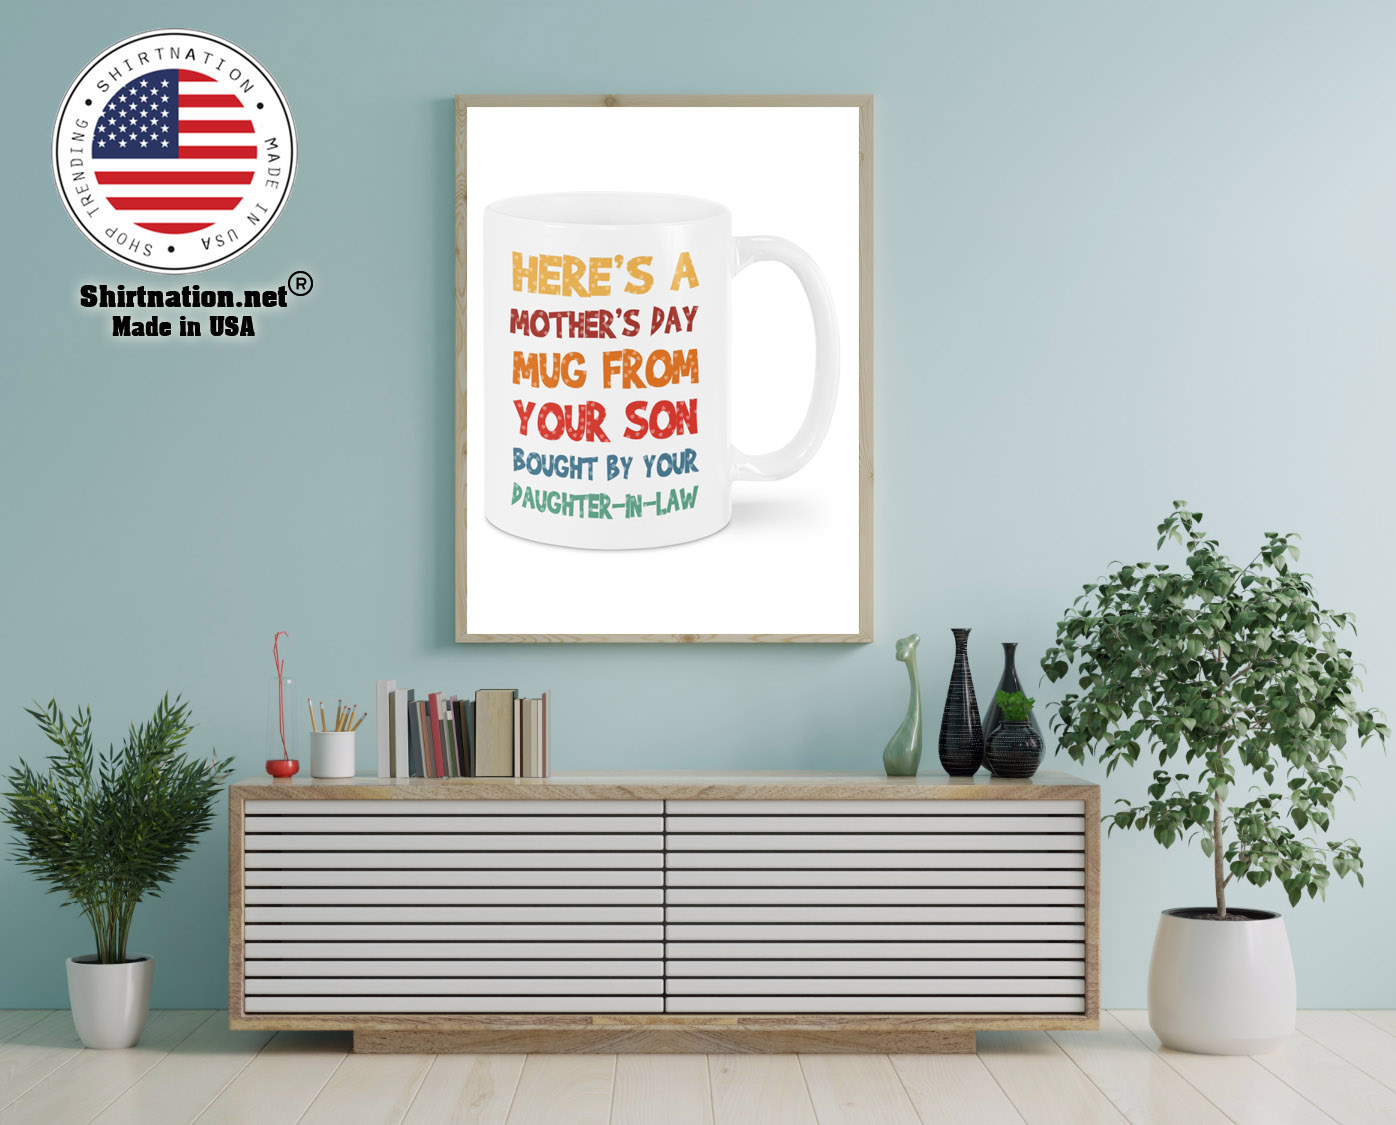 Heres a mothers day mug from your son mug 12